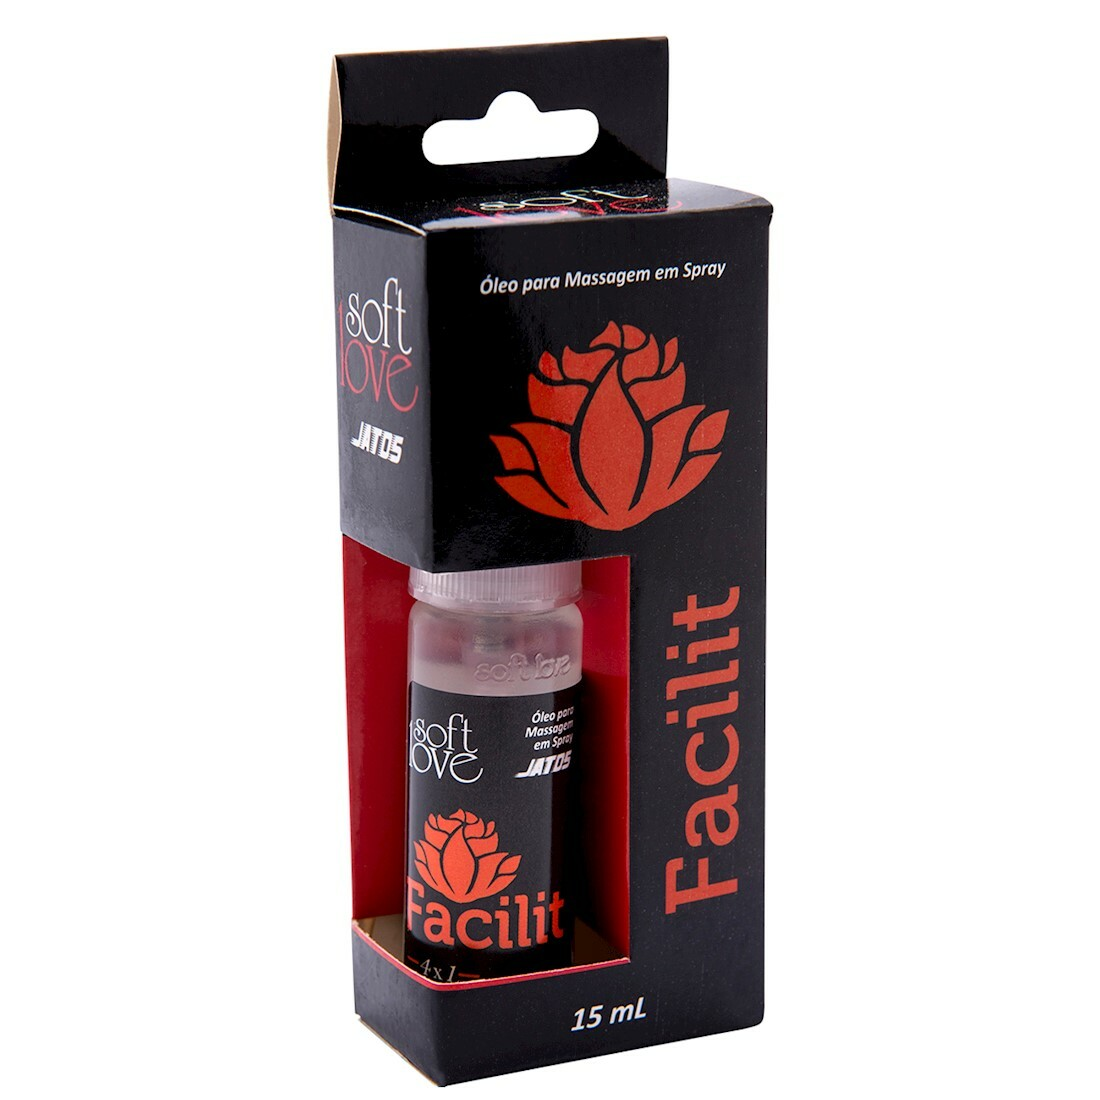 Dessensibilizante Anal Facilit Hot Blackout 15ml Jatos - Soft Love